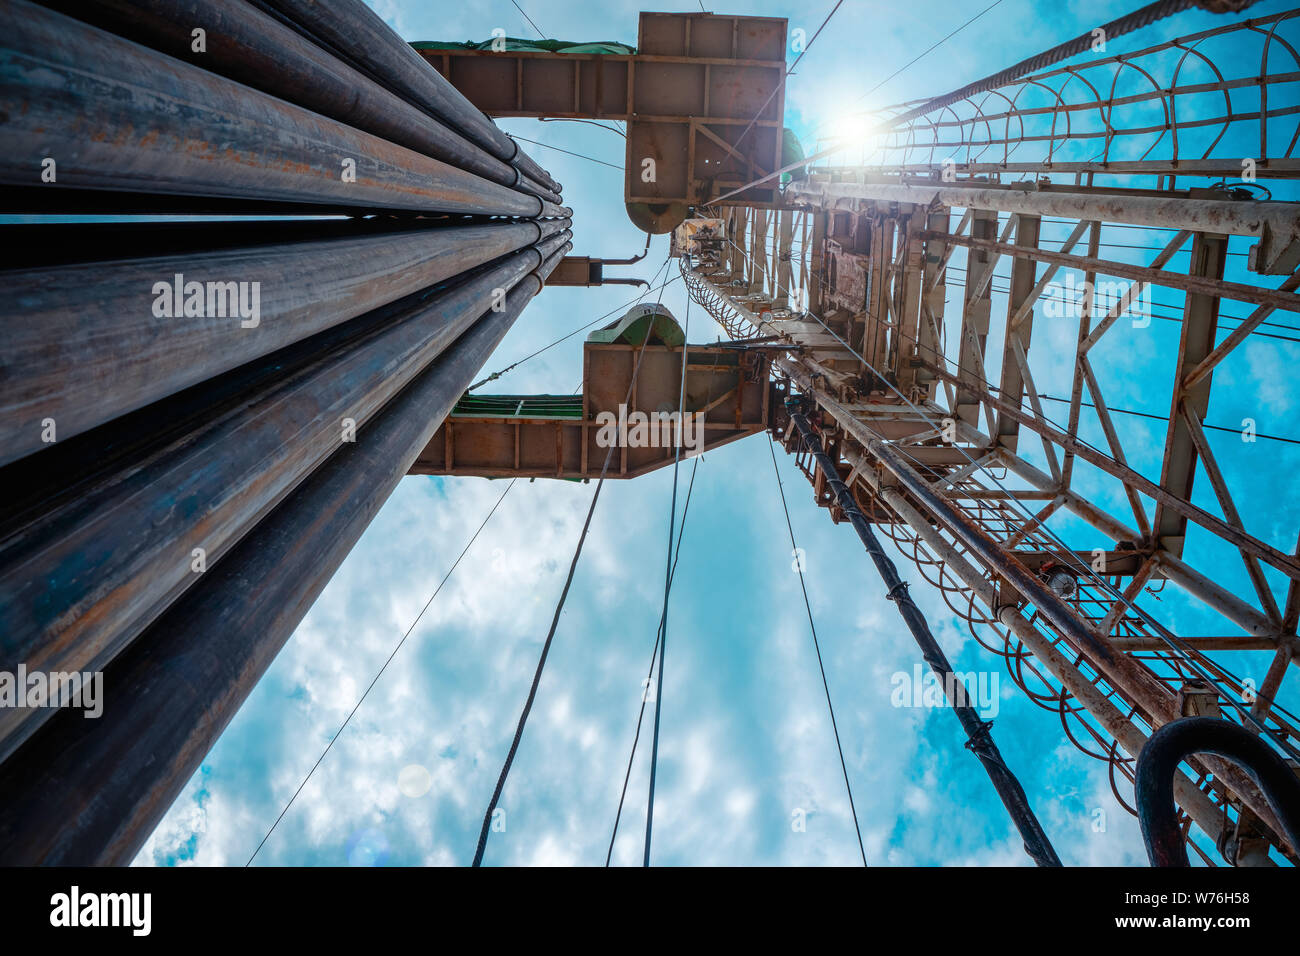 Oil and Gas Drilling Rig onshore dessert with dramatic cloudscape. Oil drilling rig operation on the oil platform in oil and gas industry. Stock Photo